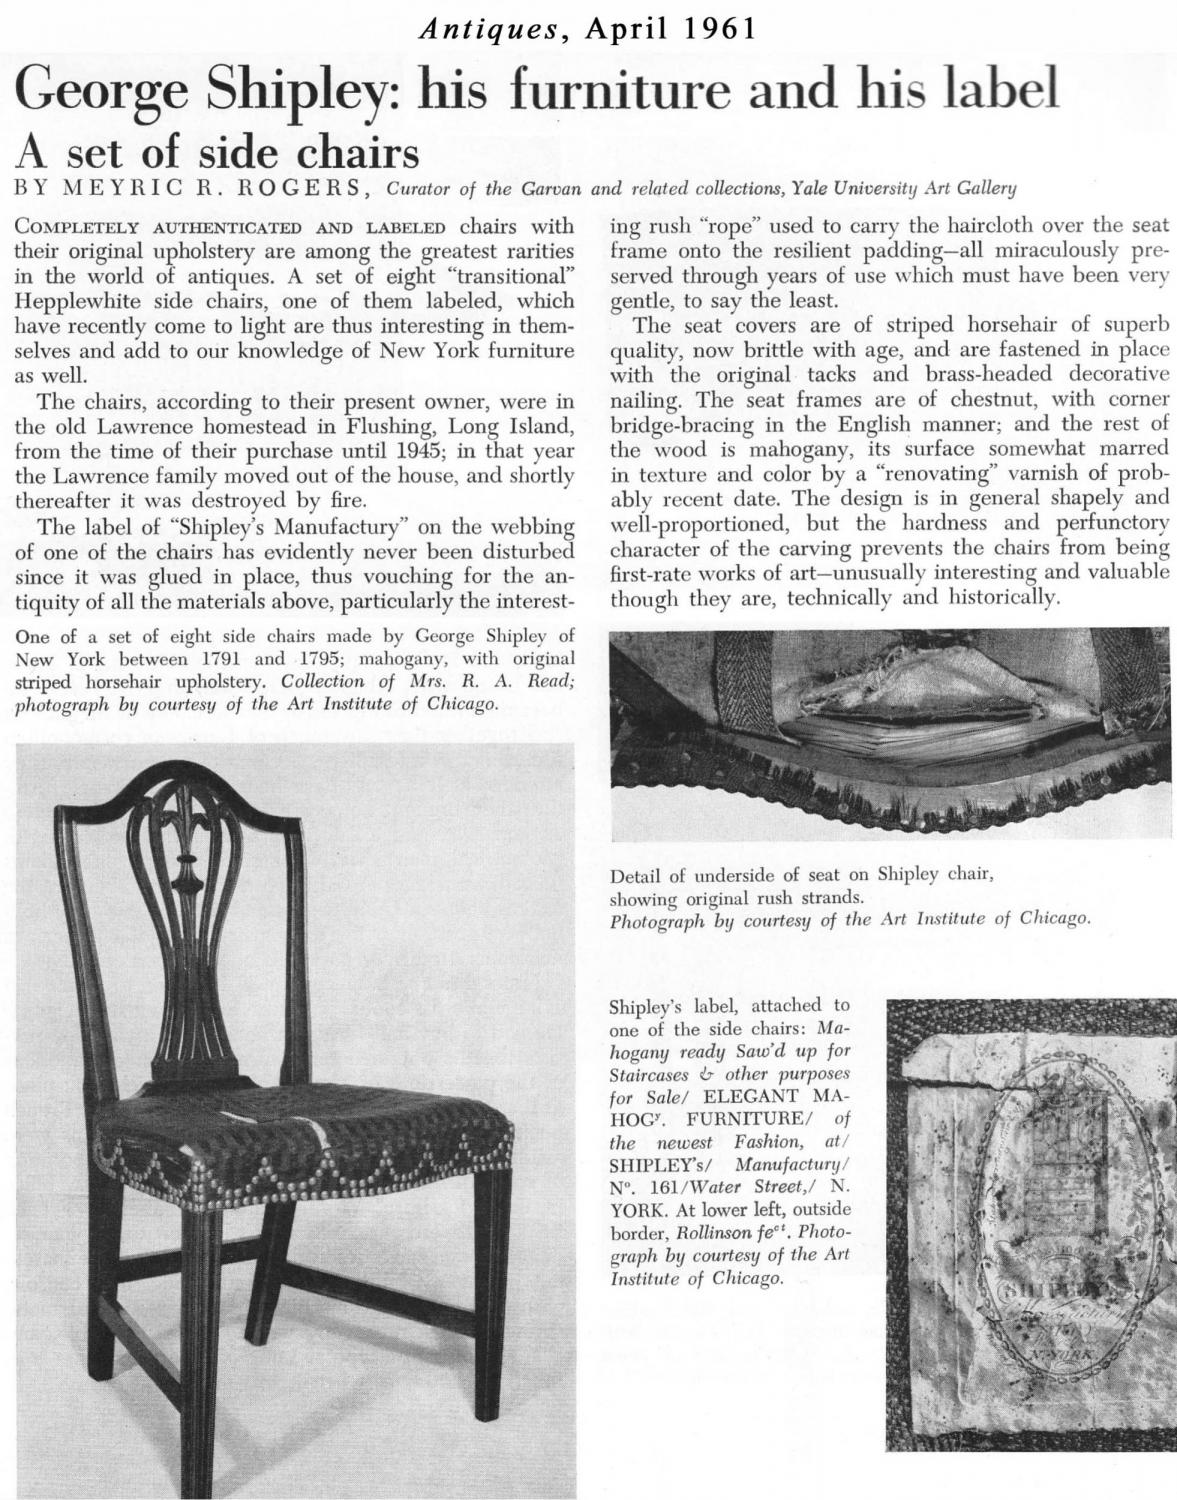 Provenance: Madalyne D. Tillinghast Attribution Is Based On A Labeled  Chair, ANTIQUES, April 1961, P. 374, George Shipley: His Furniture And His  Label (see ...